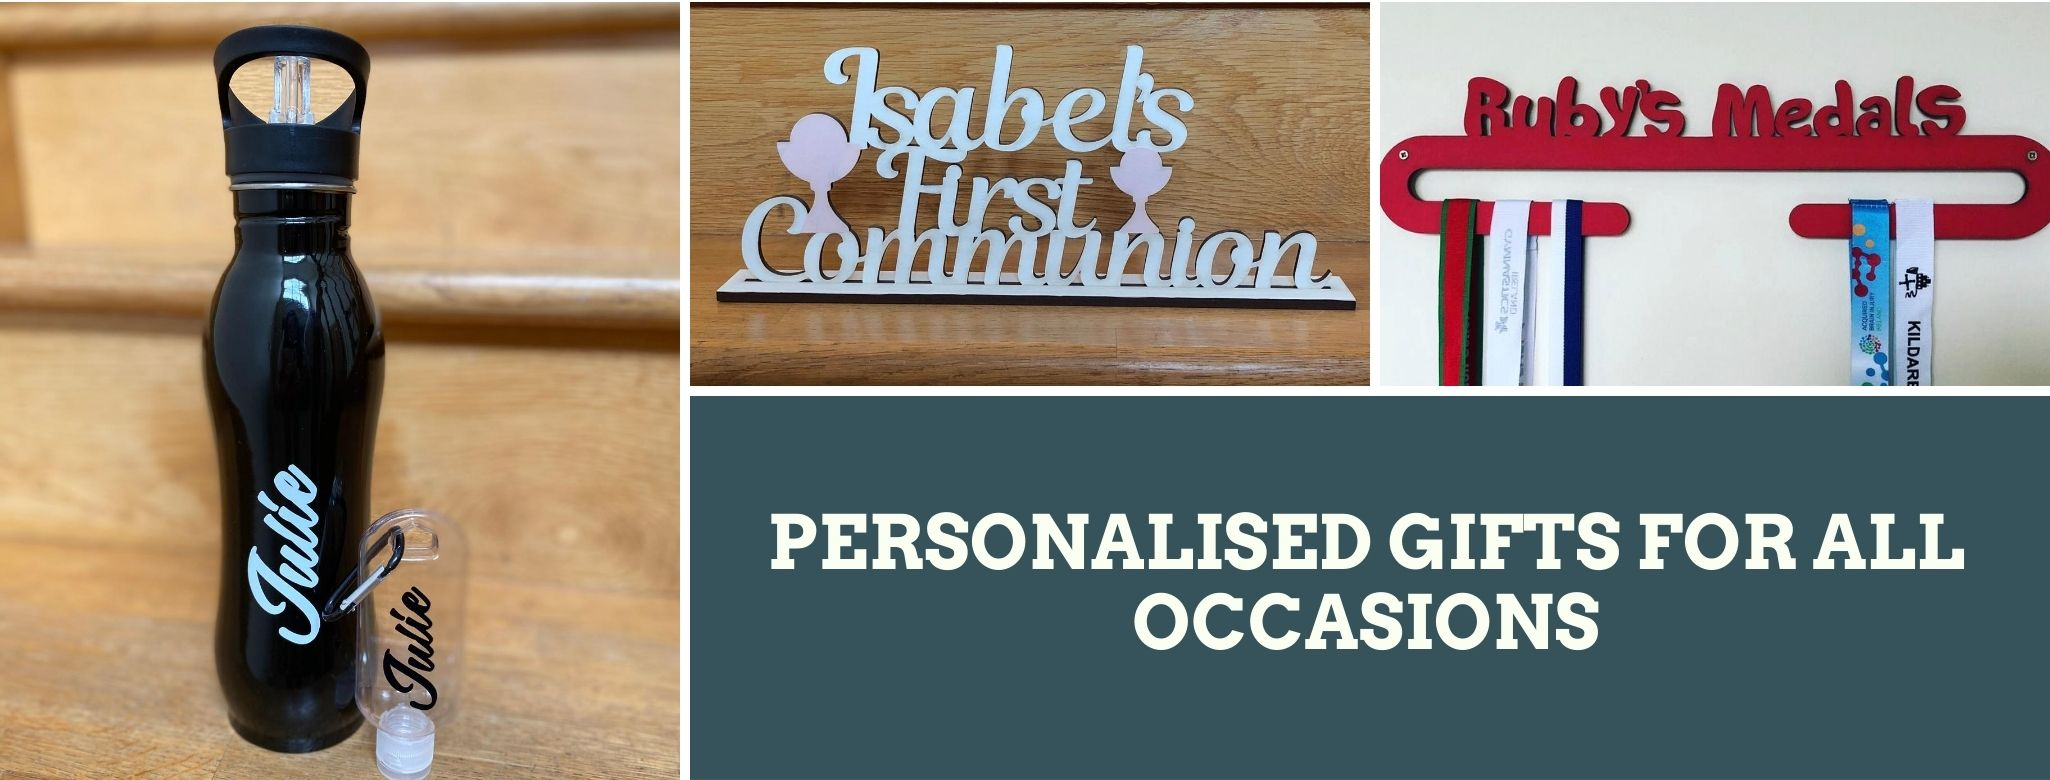 personalised gifts izubee all occasions medals water bottles stainless steel hand sanitiser bottles